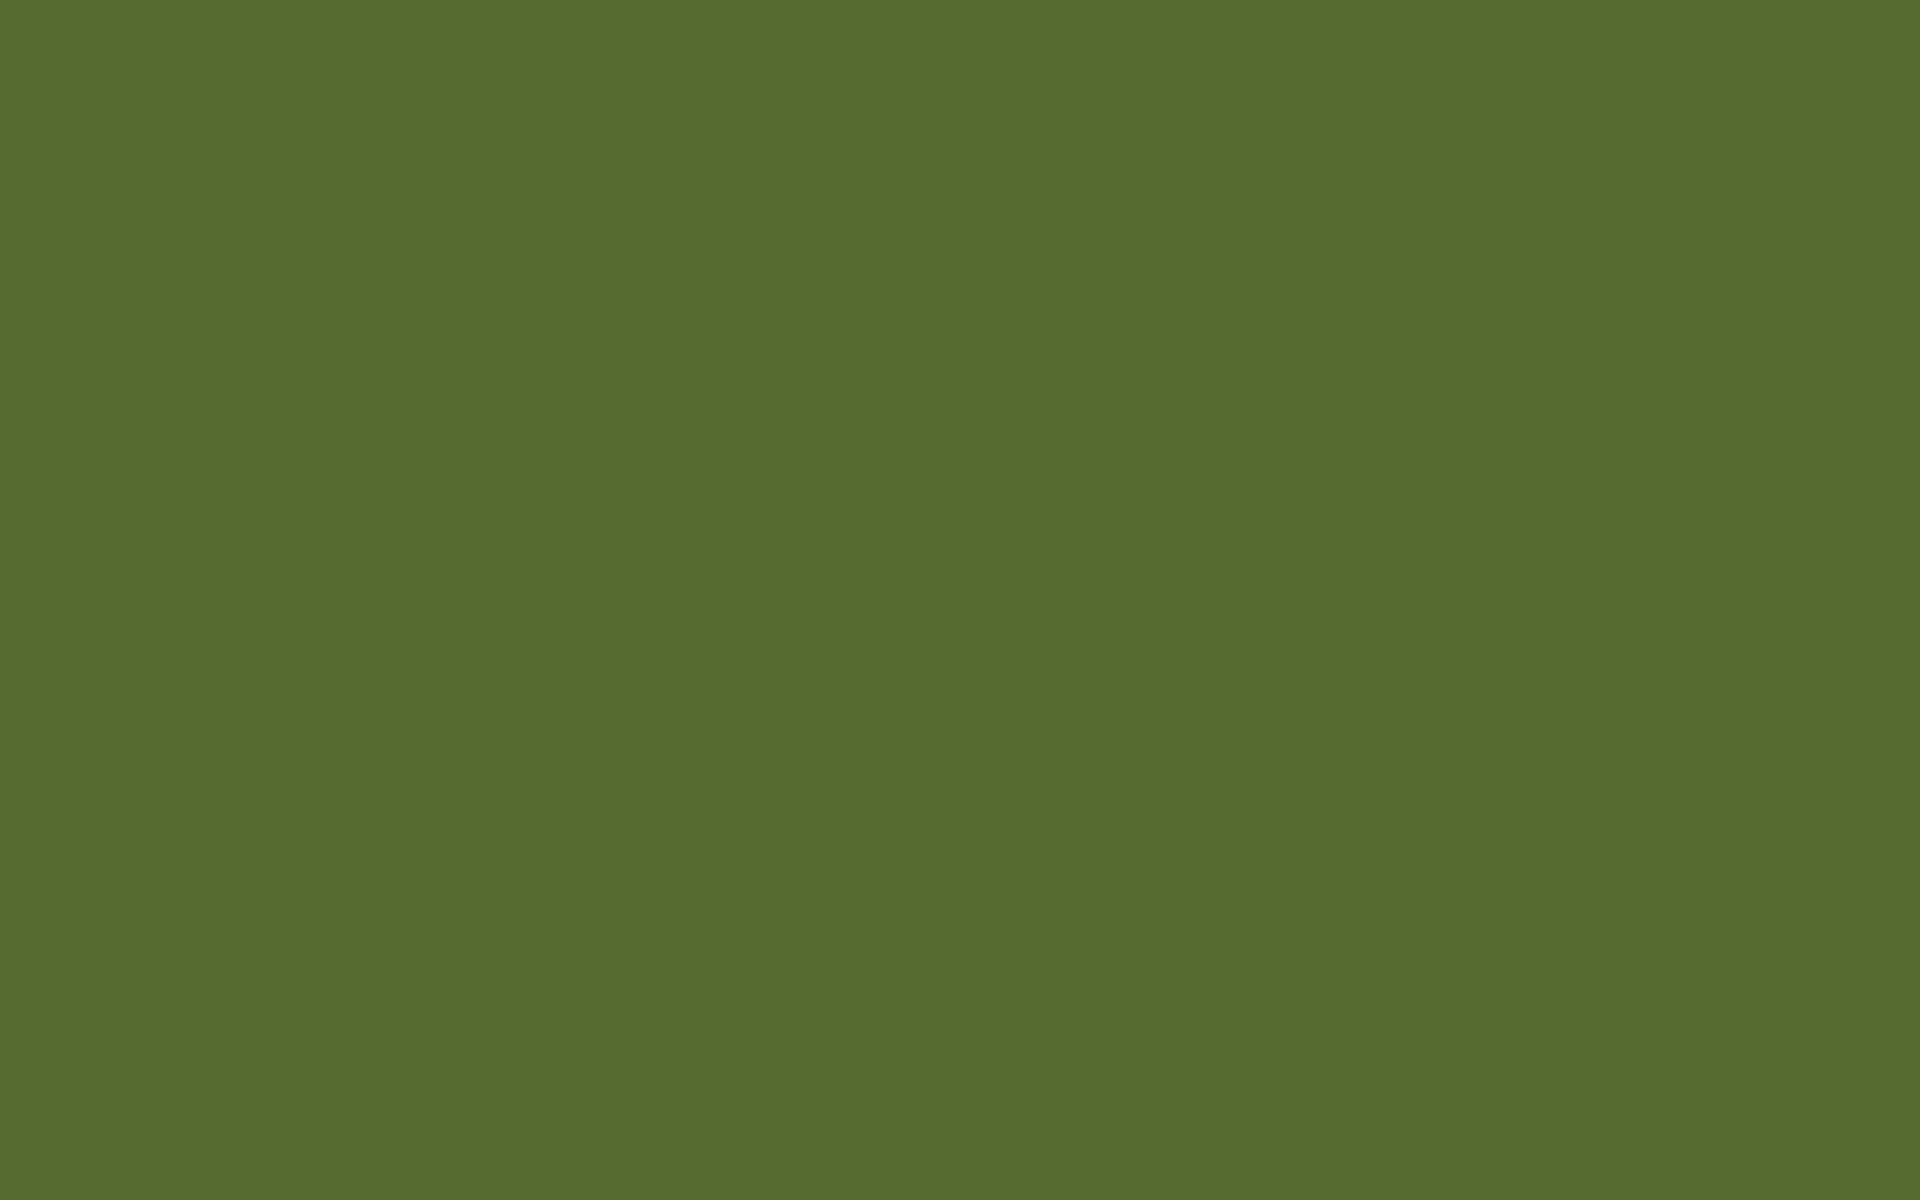 1920x1200 Dark Olive Green Solid Color Background